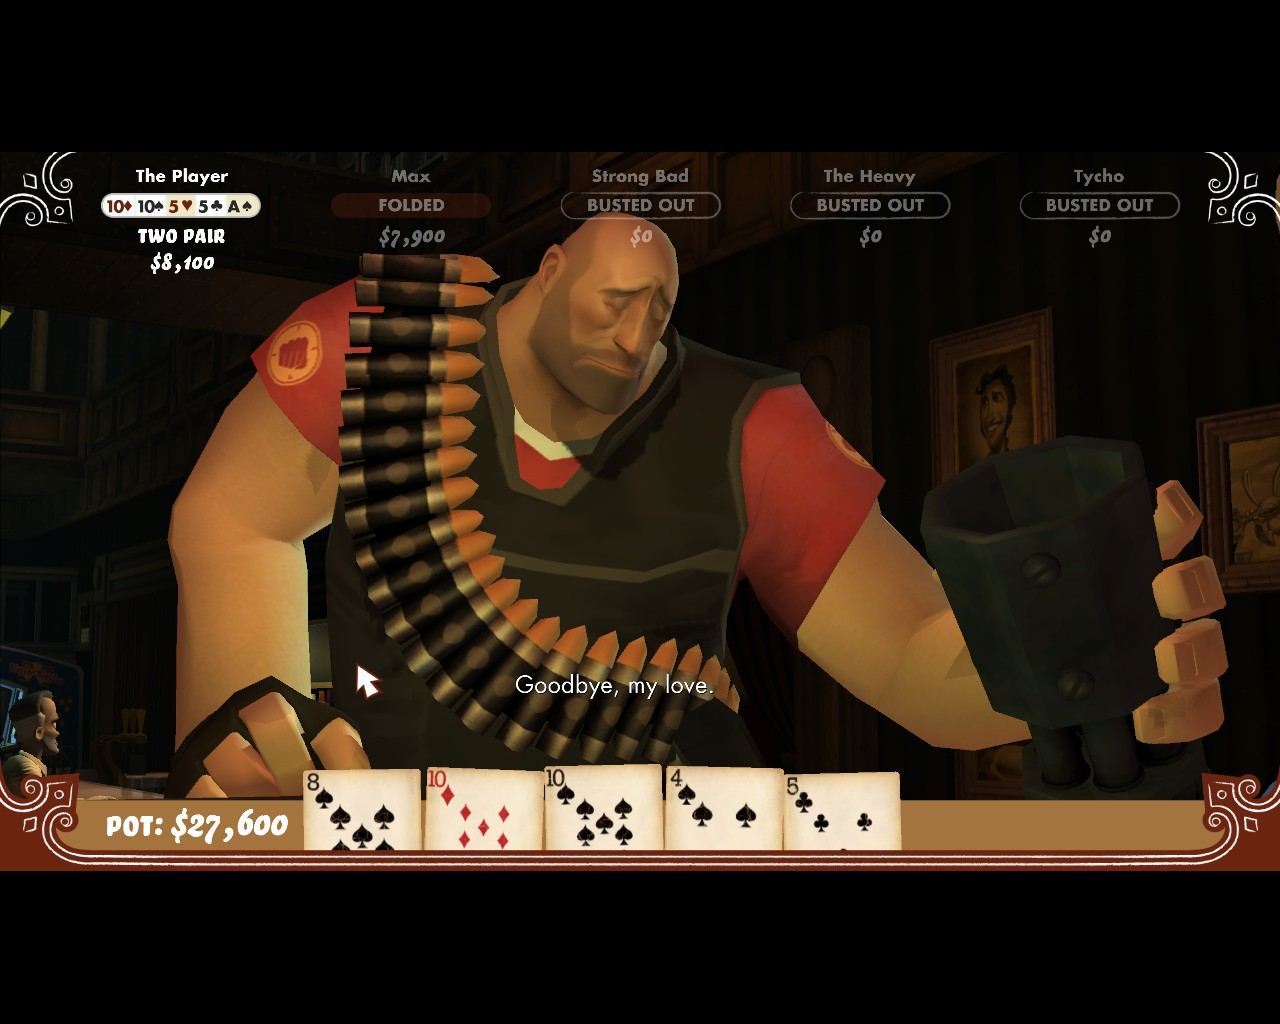 How to get tf2 items in poker night 2